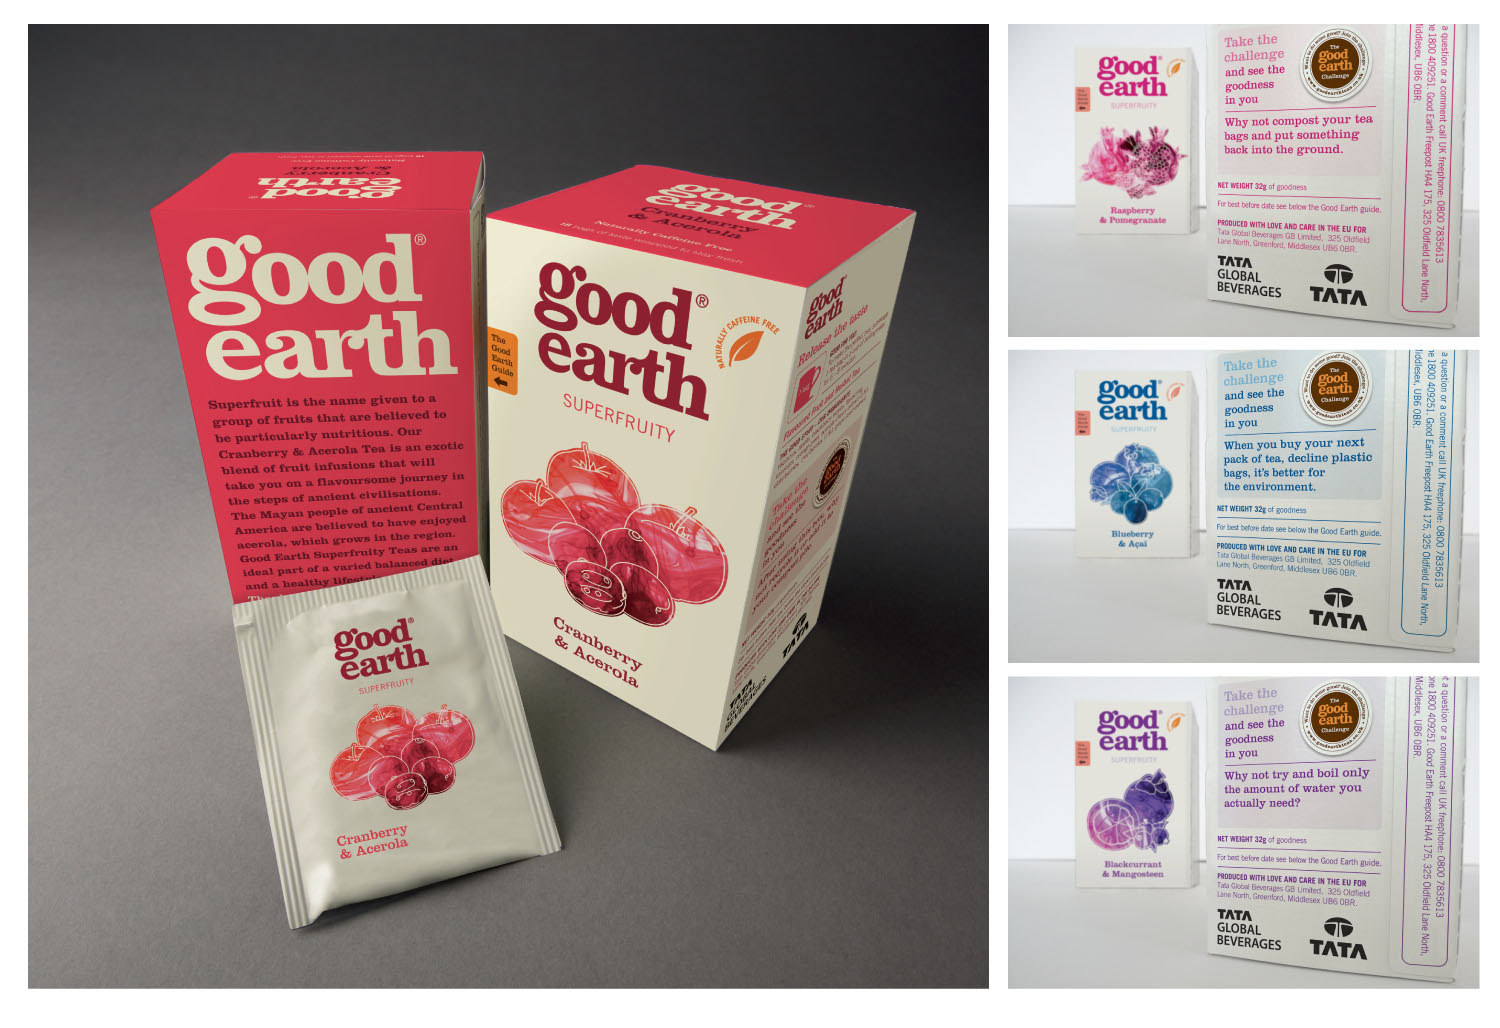 The back of the packs reinforced the Good Earth tone of voice with  The Good Earth Challenge  - encouraging customers to be good to others, good to the planet and good to themselves.